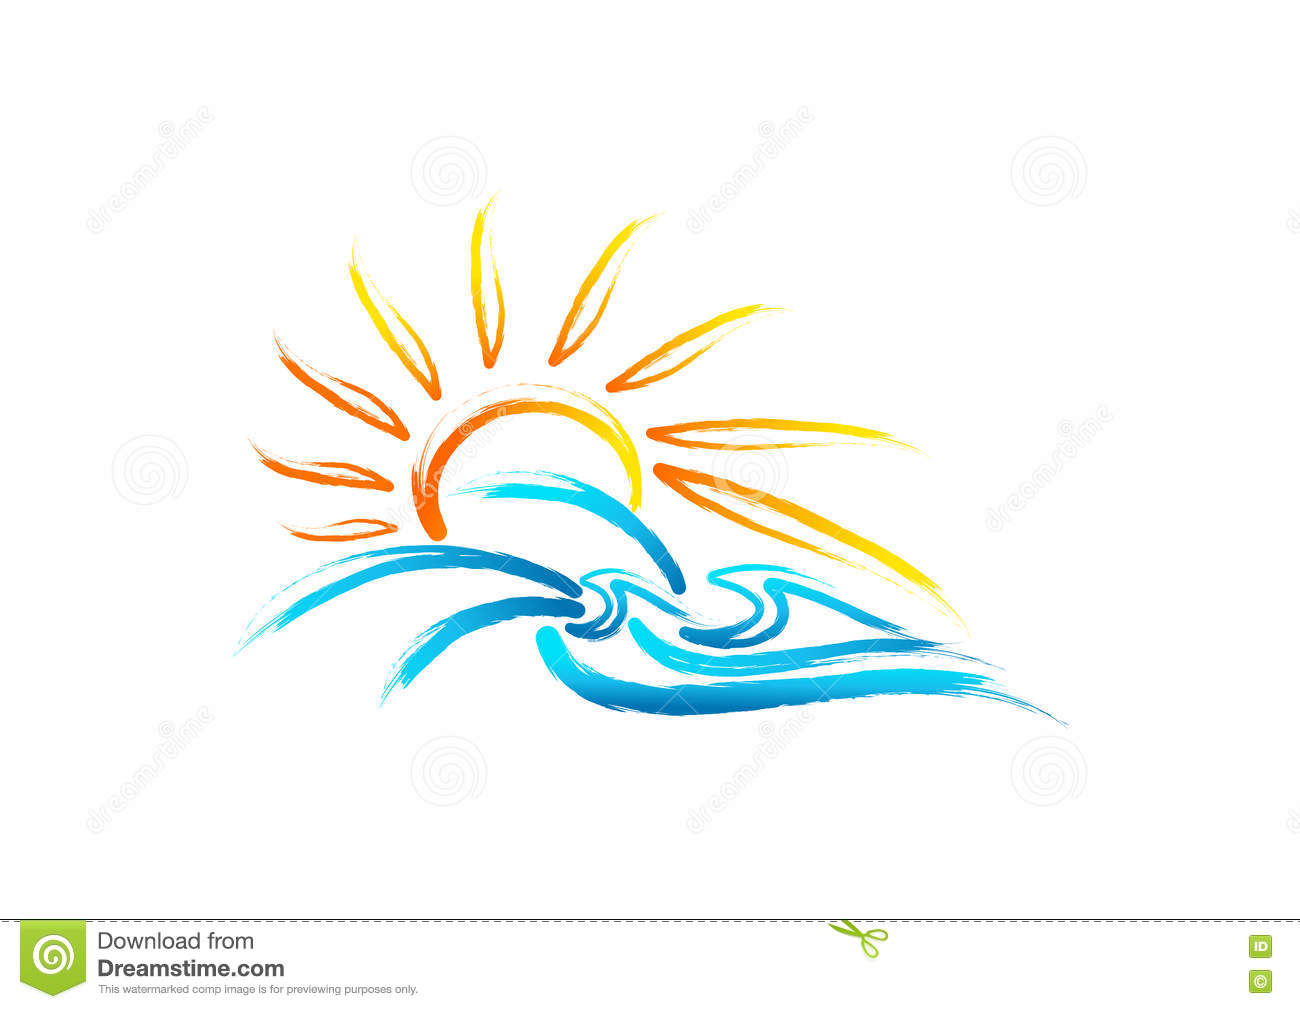 Sun sea wave logo, vintage summer symbol, retro wild nature marine concept design